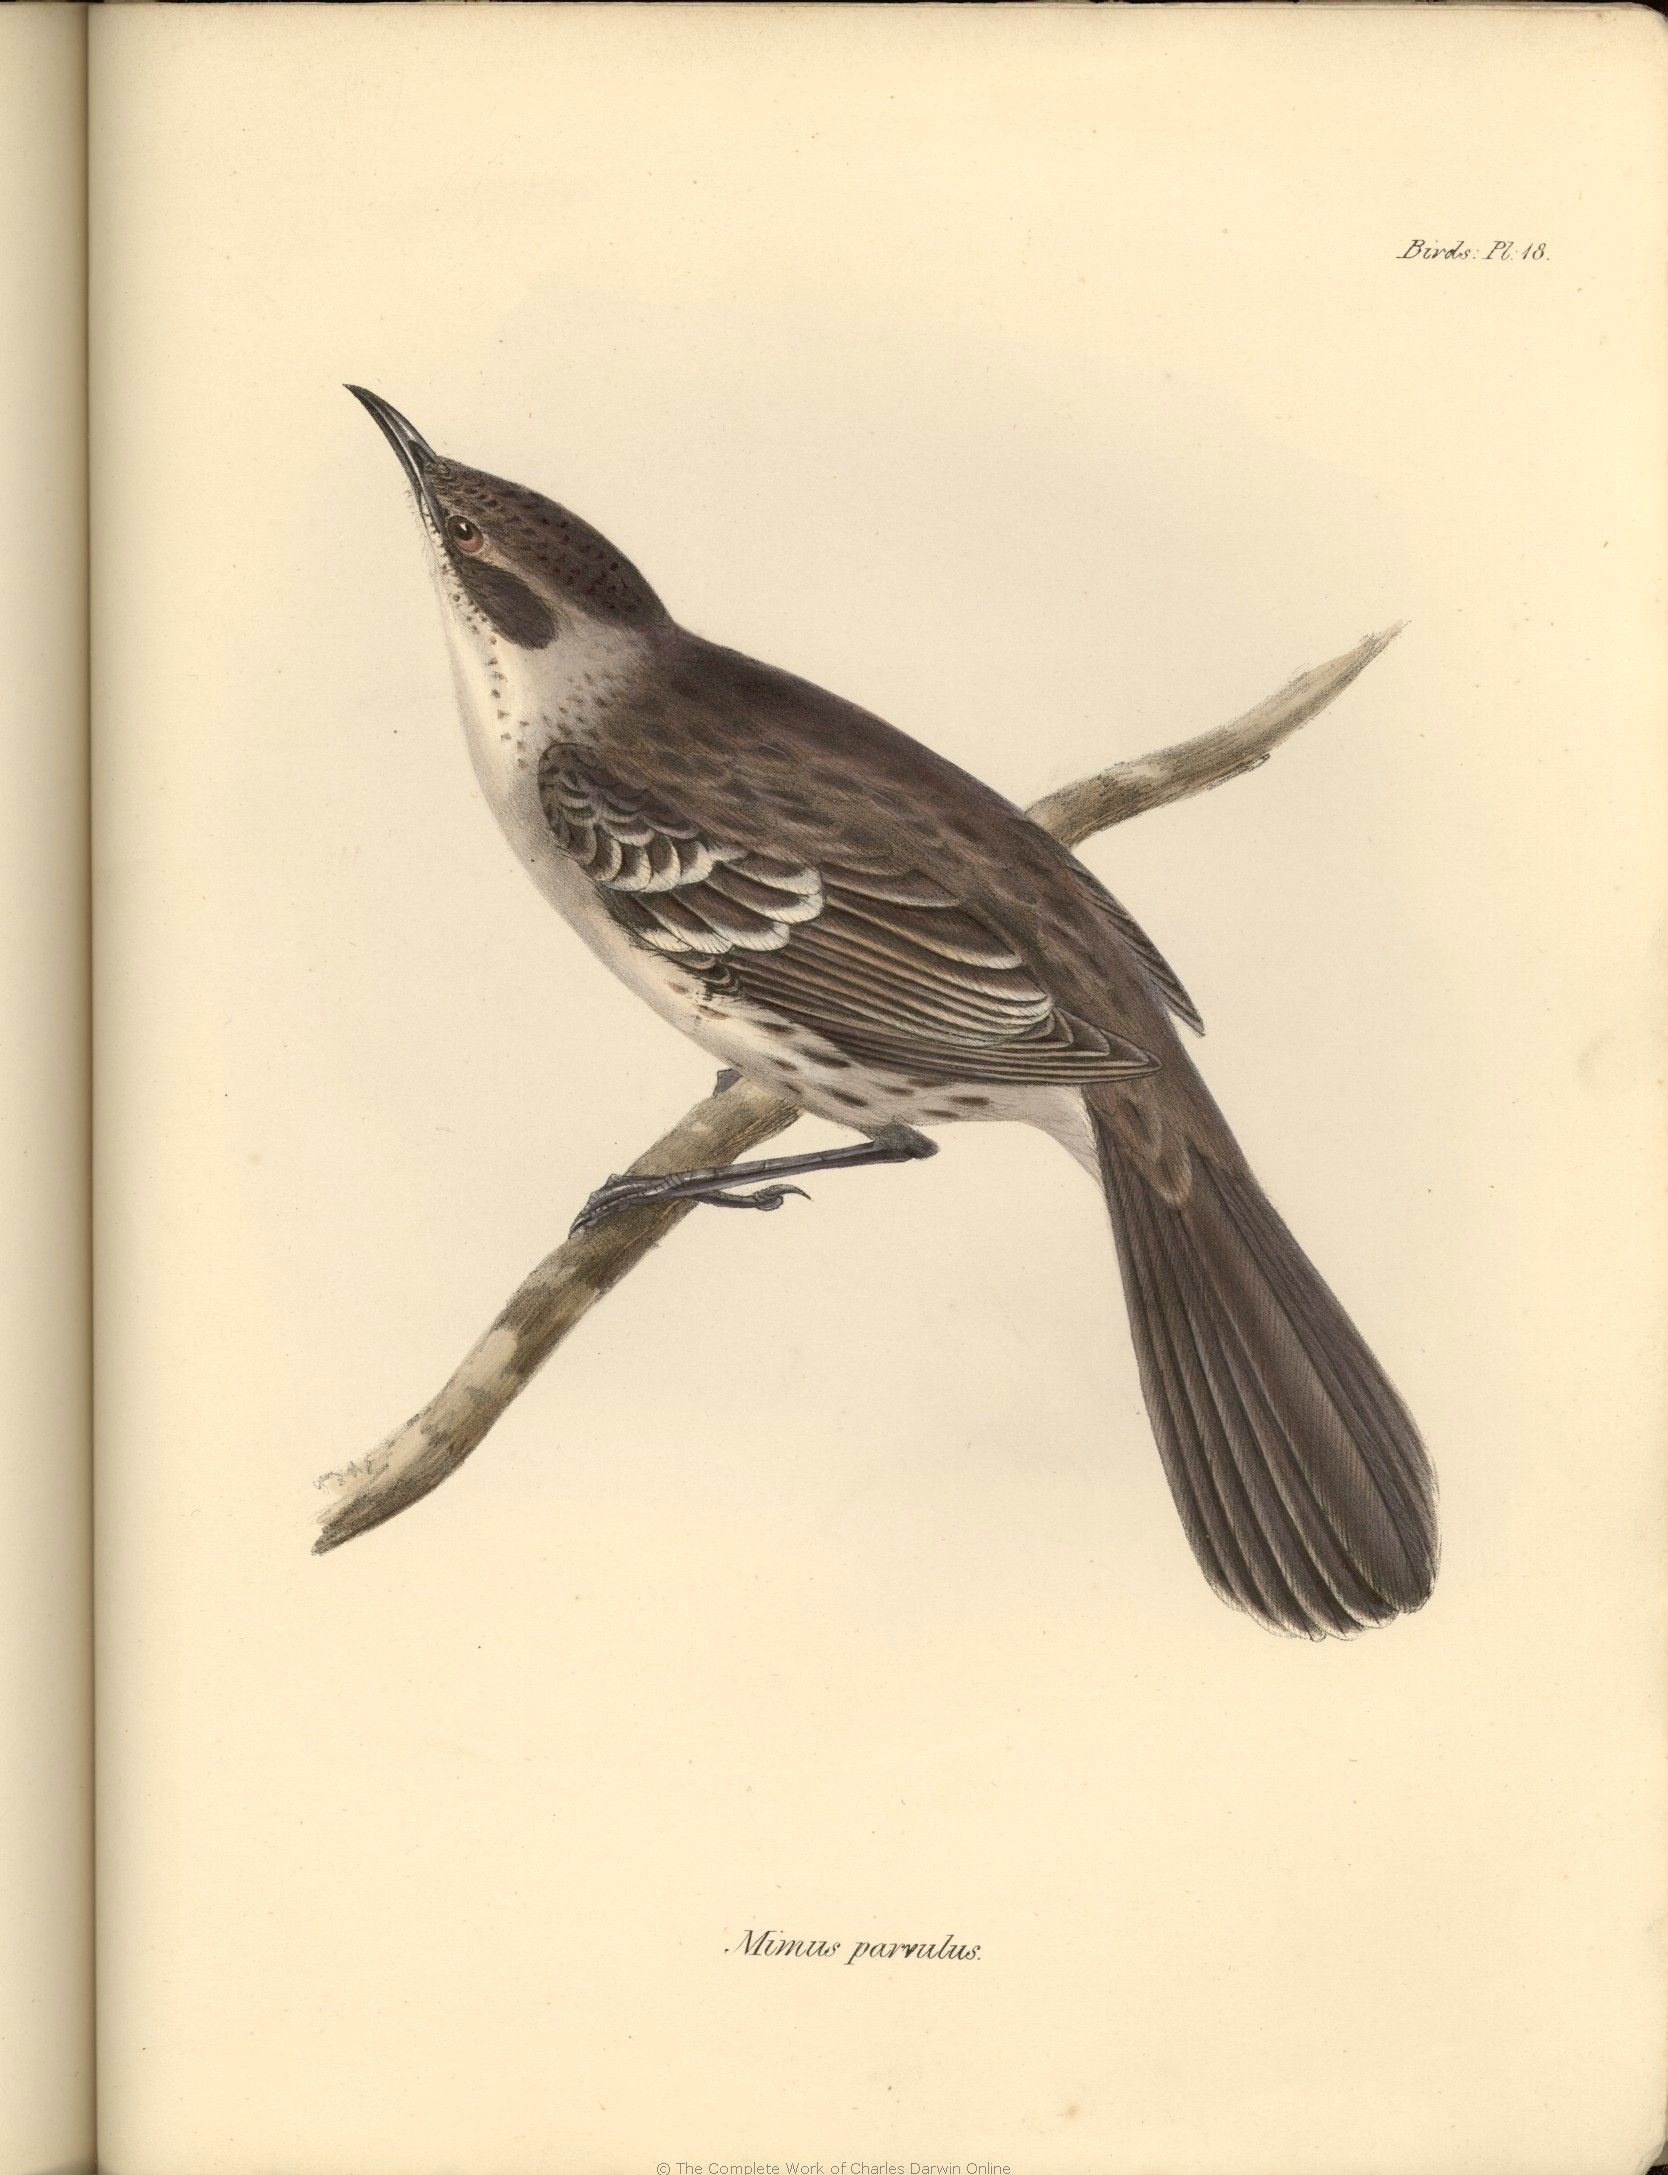 Galápagos Mockingbird collected by Charles Darwin and illustrated by ...